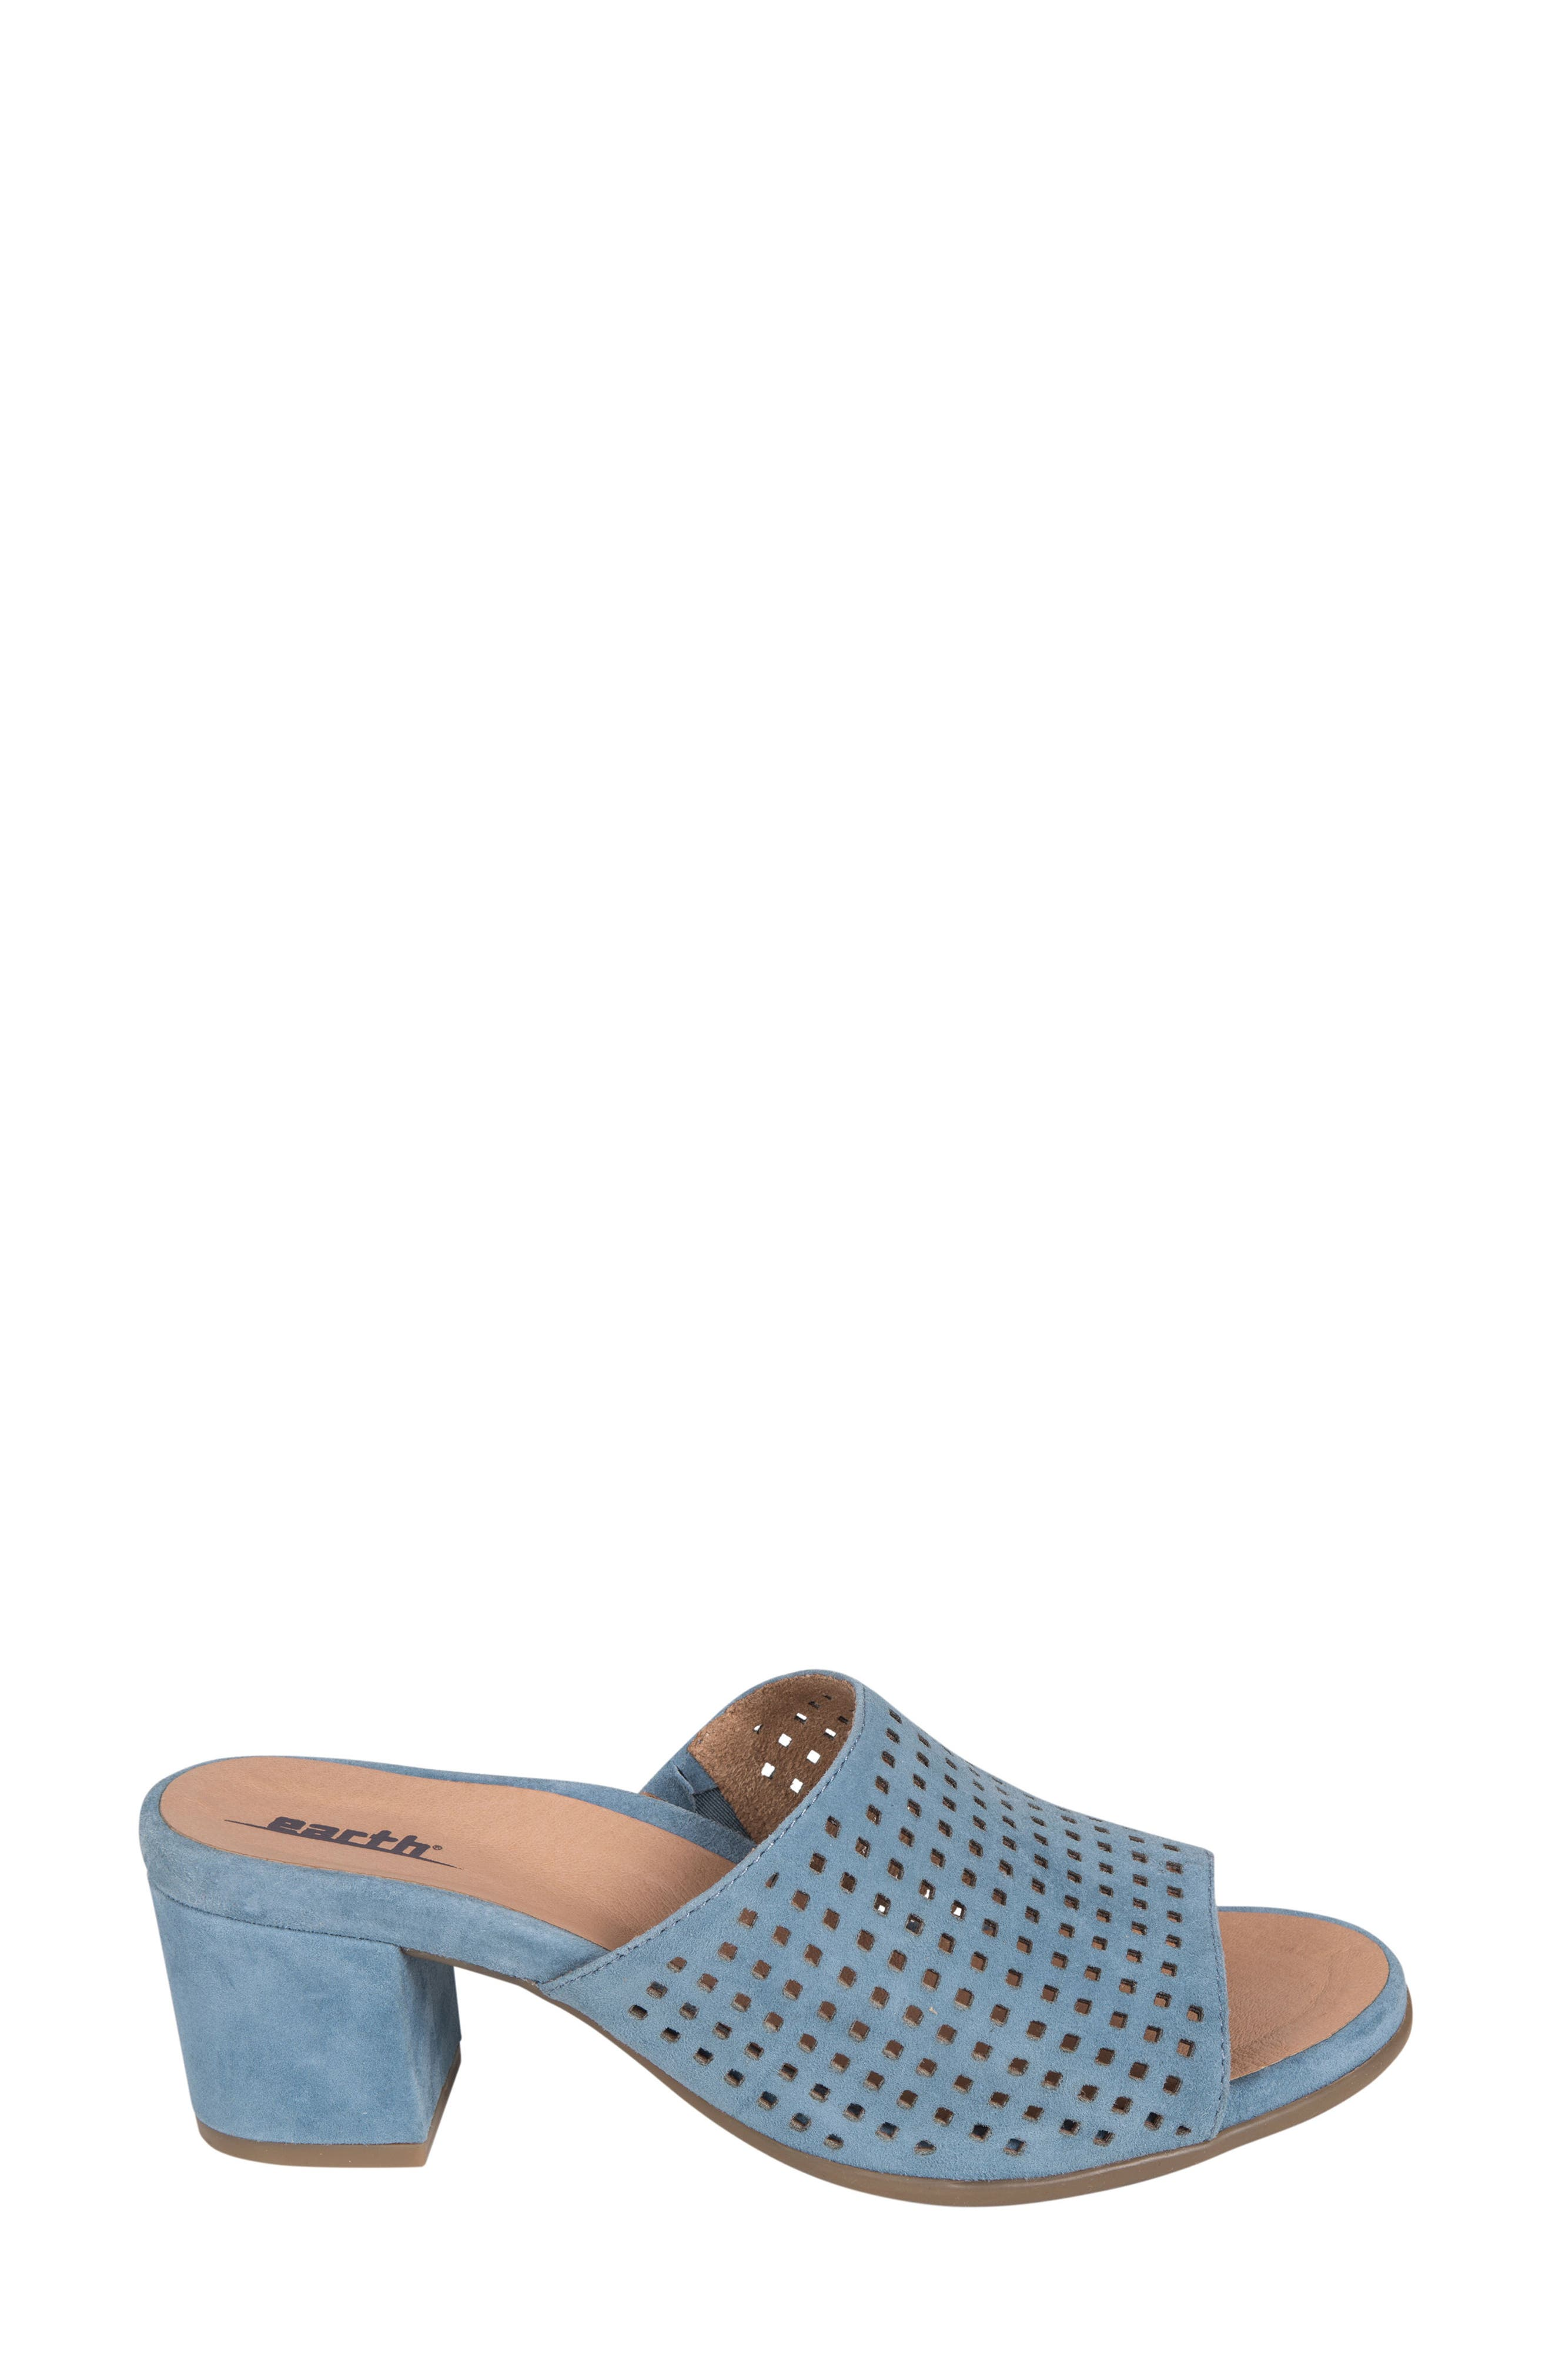 Ibiza Perforated Sandal,                             Alternate thumbnail 3, color,                             SKY BLUE SUEDE